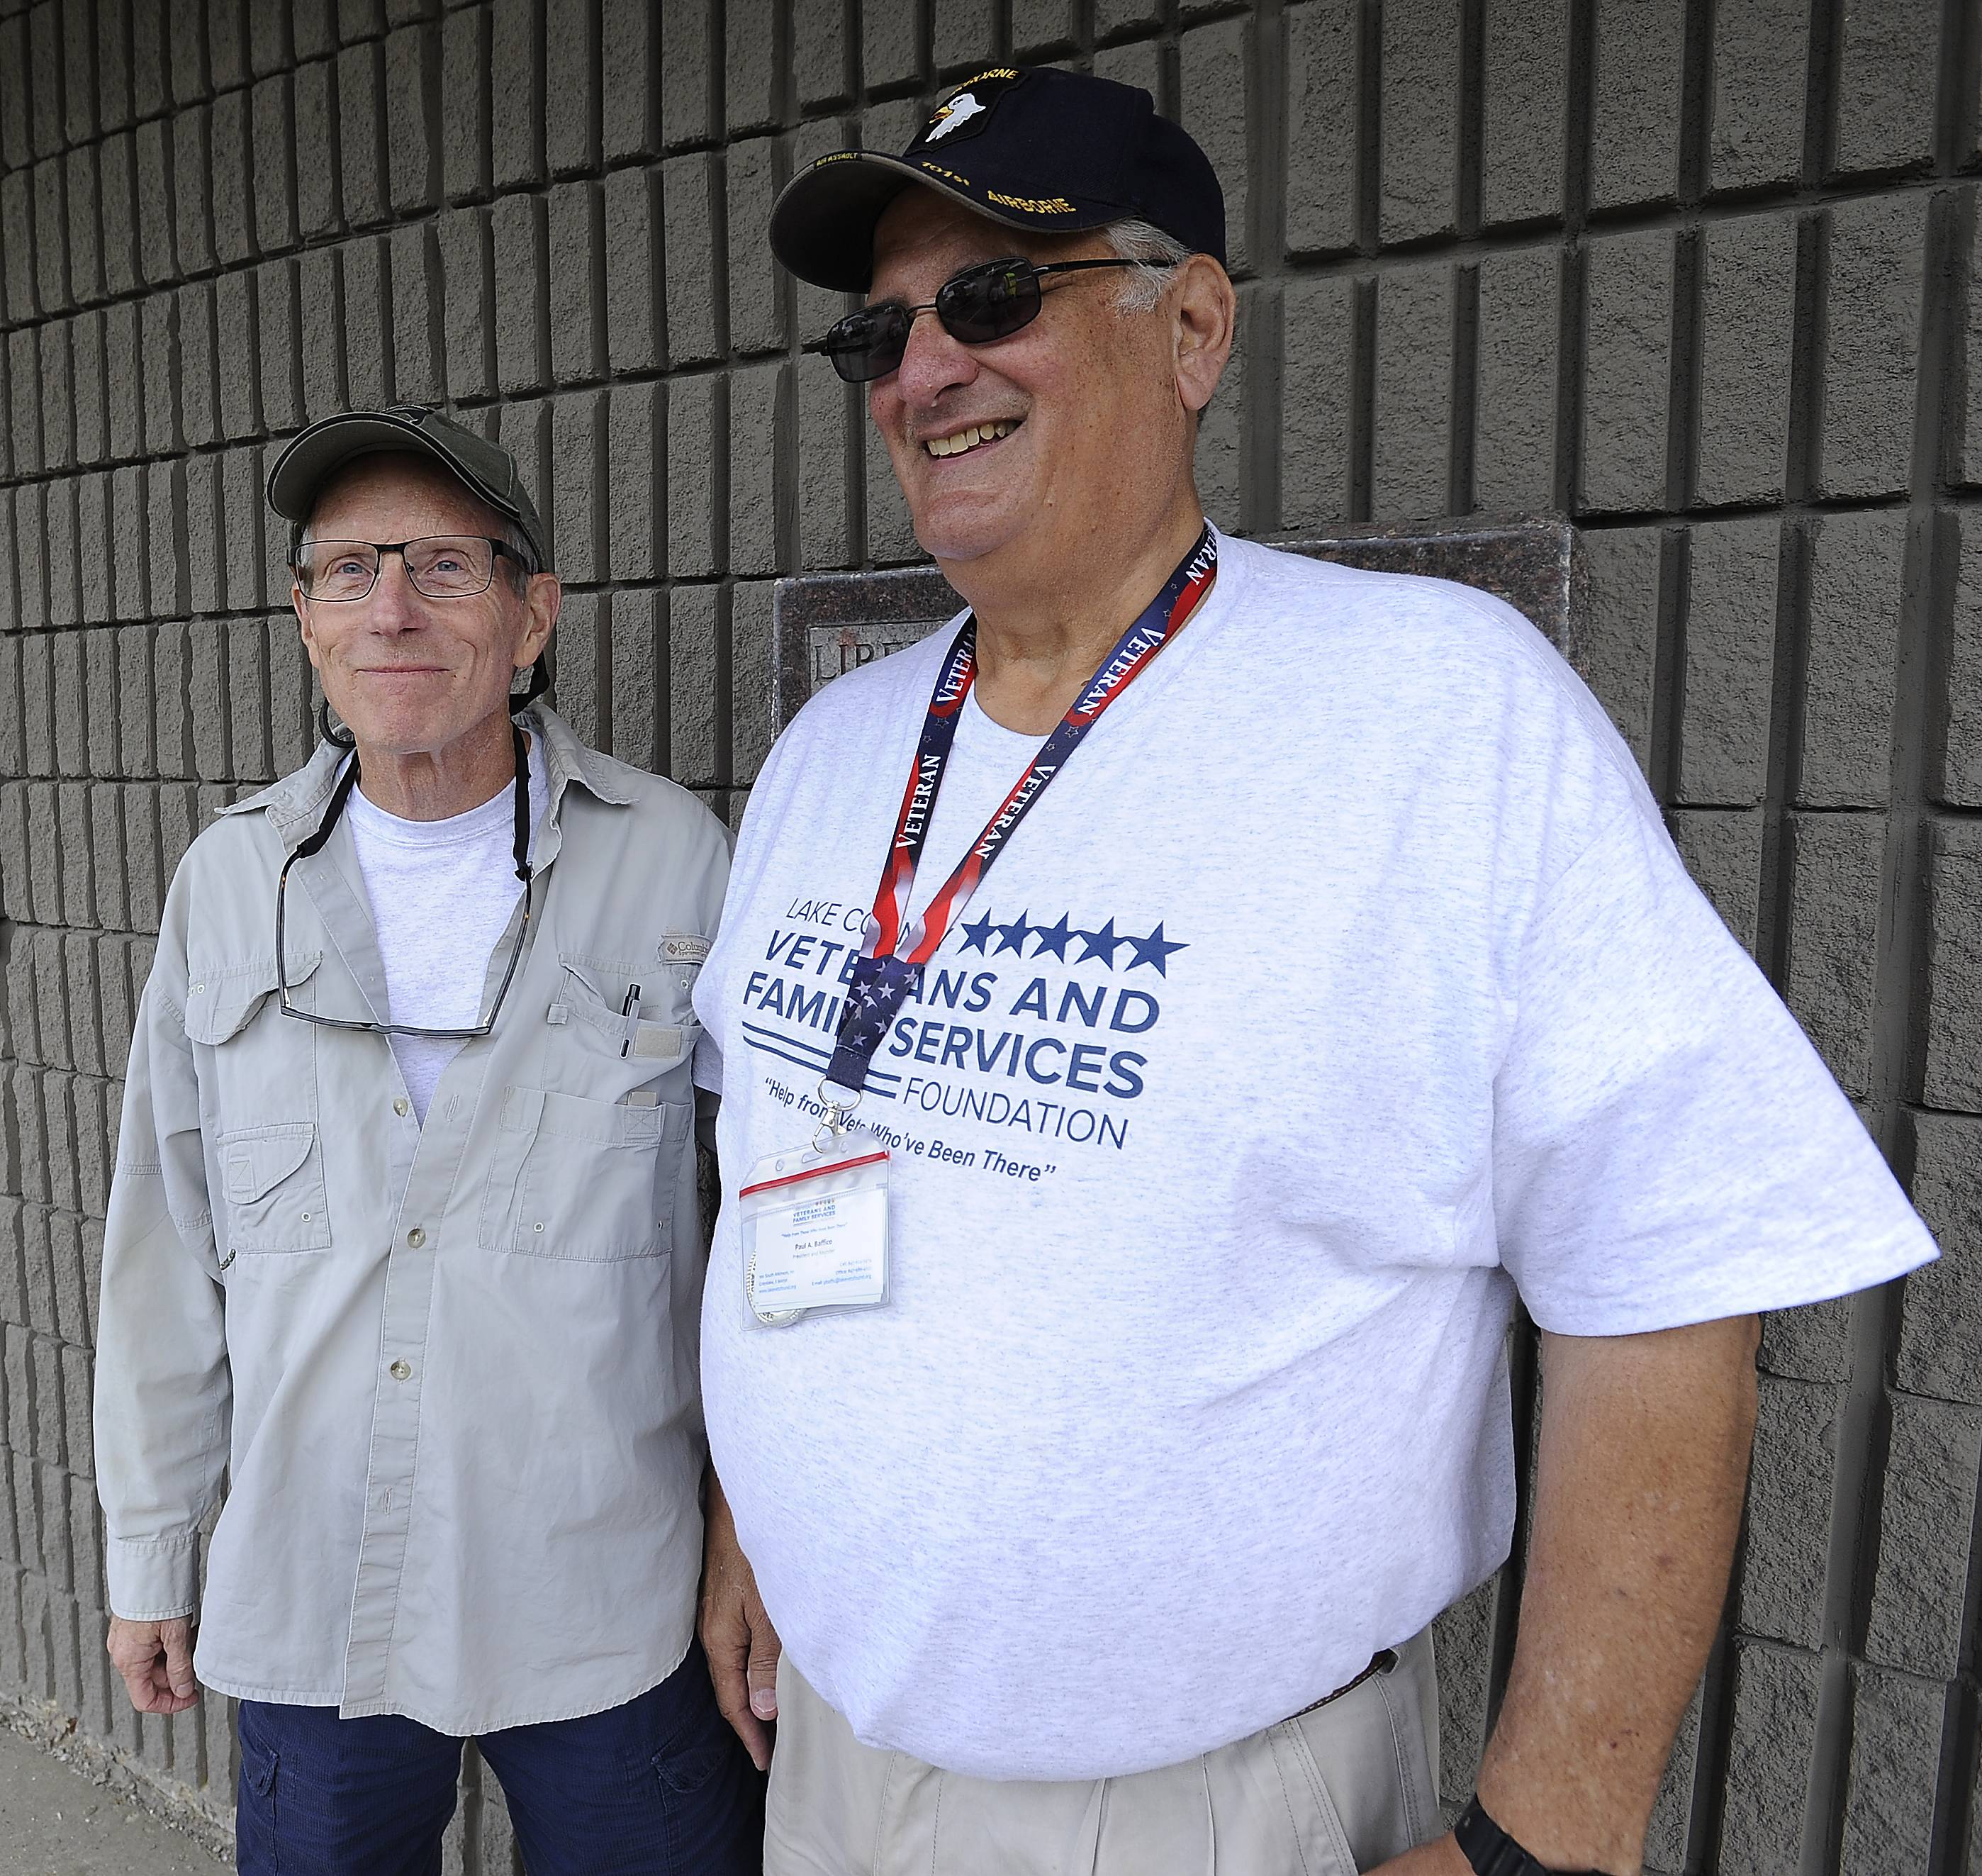 Bob Gorman of Barrington, left, and Paul Baffico of Lake Bluff, watch Saturday as more than 85 supporters of the Lake County Veterans Family Services Foundation begin a march to bring awareness to the community that 20 veterans kill themselves a day around the country.